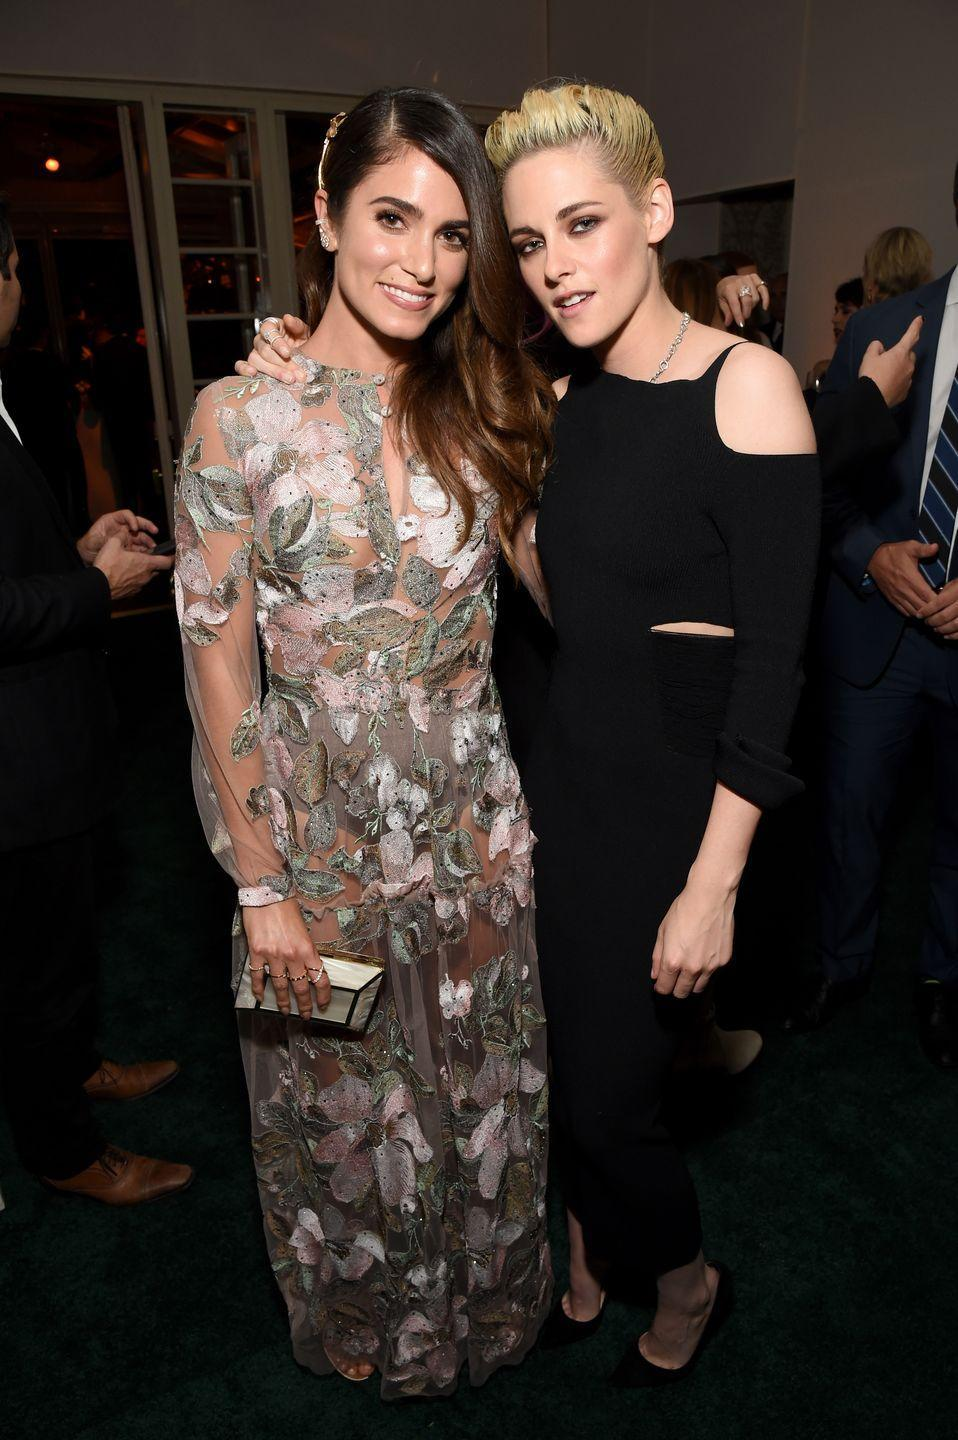 """<p>The actresses <a href=""""https://www.popsugar.com/celebrity/photo-gallery/43552517/image/43569436/Nikki-Reed-Kristen-Stewart"""" rel=""""nofollow noopener"""" target=""""_blank"""" data-ylk=""""slk:lived together in Vancouver"""" class=""""link rapid-noclick-resp"""">lived together in Vancouver</a> while filming the second installment of the popular saga, <em>Twilight: New Moon</em>. Stewart and Reed didn't go out much, but said their co-star Peter Facinelli would make them pasta dinners.</p>"""